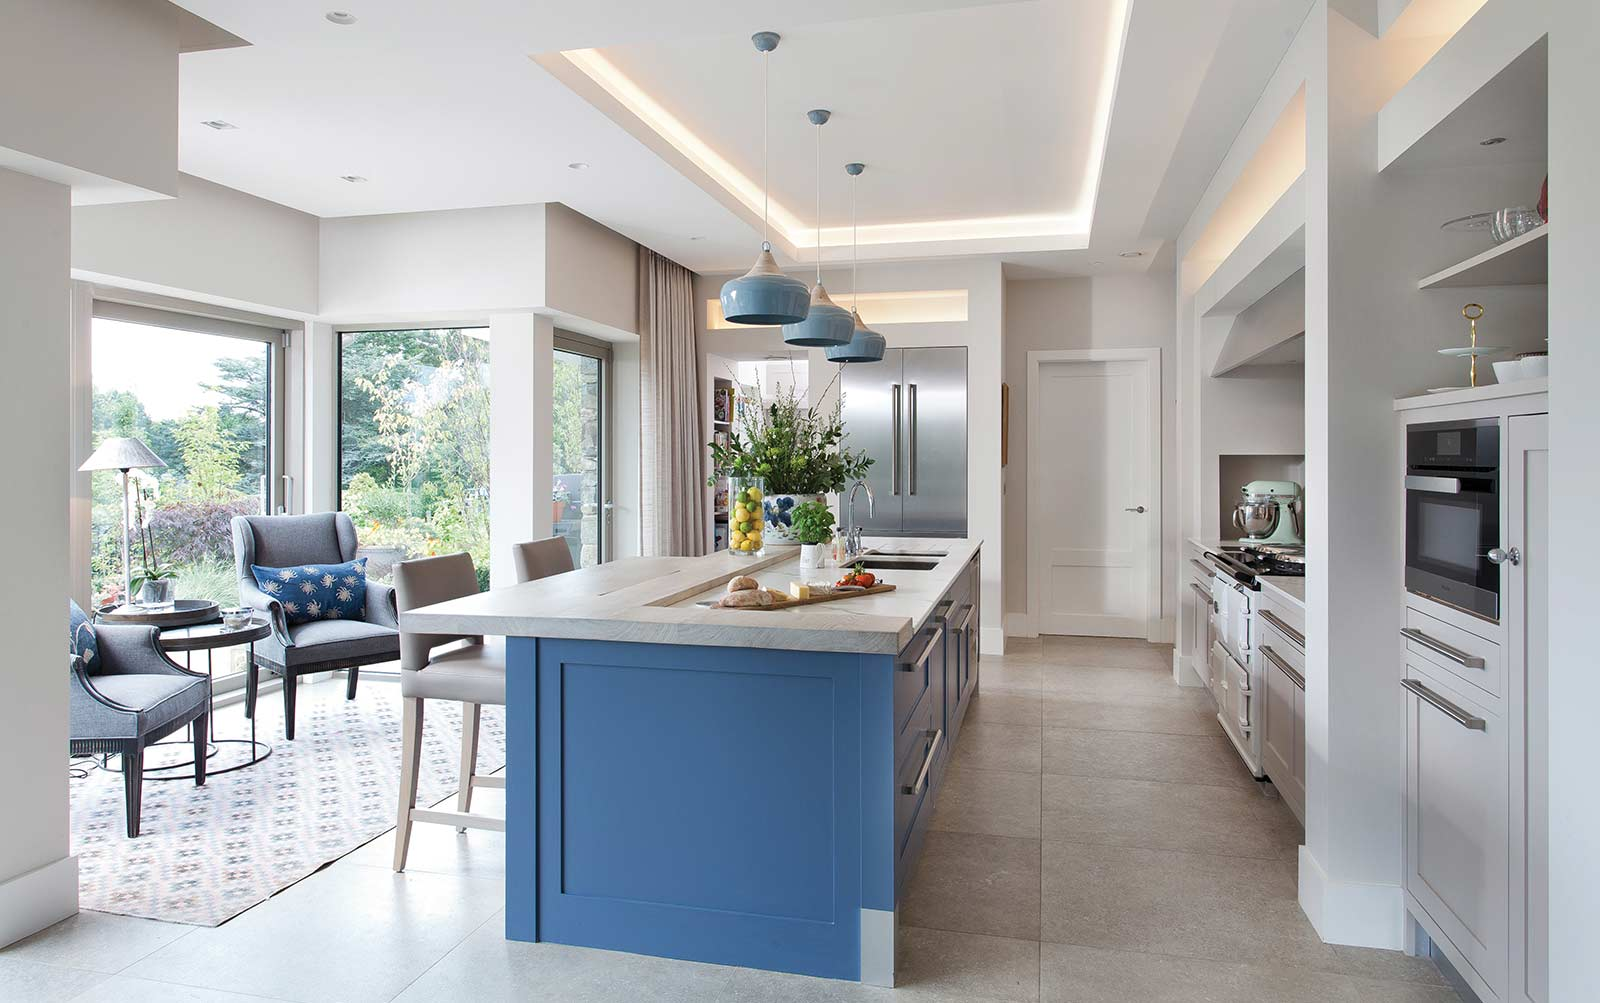 North Down coastal home kitchen design by Thompson Clarke